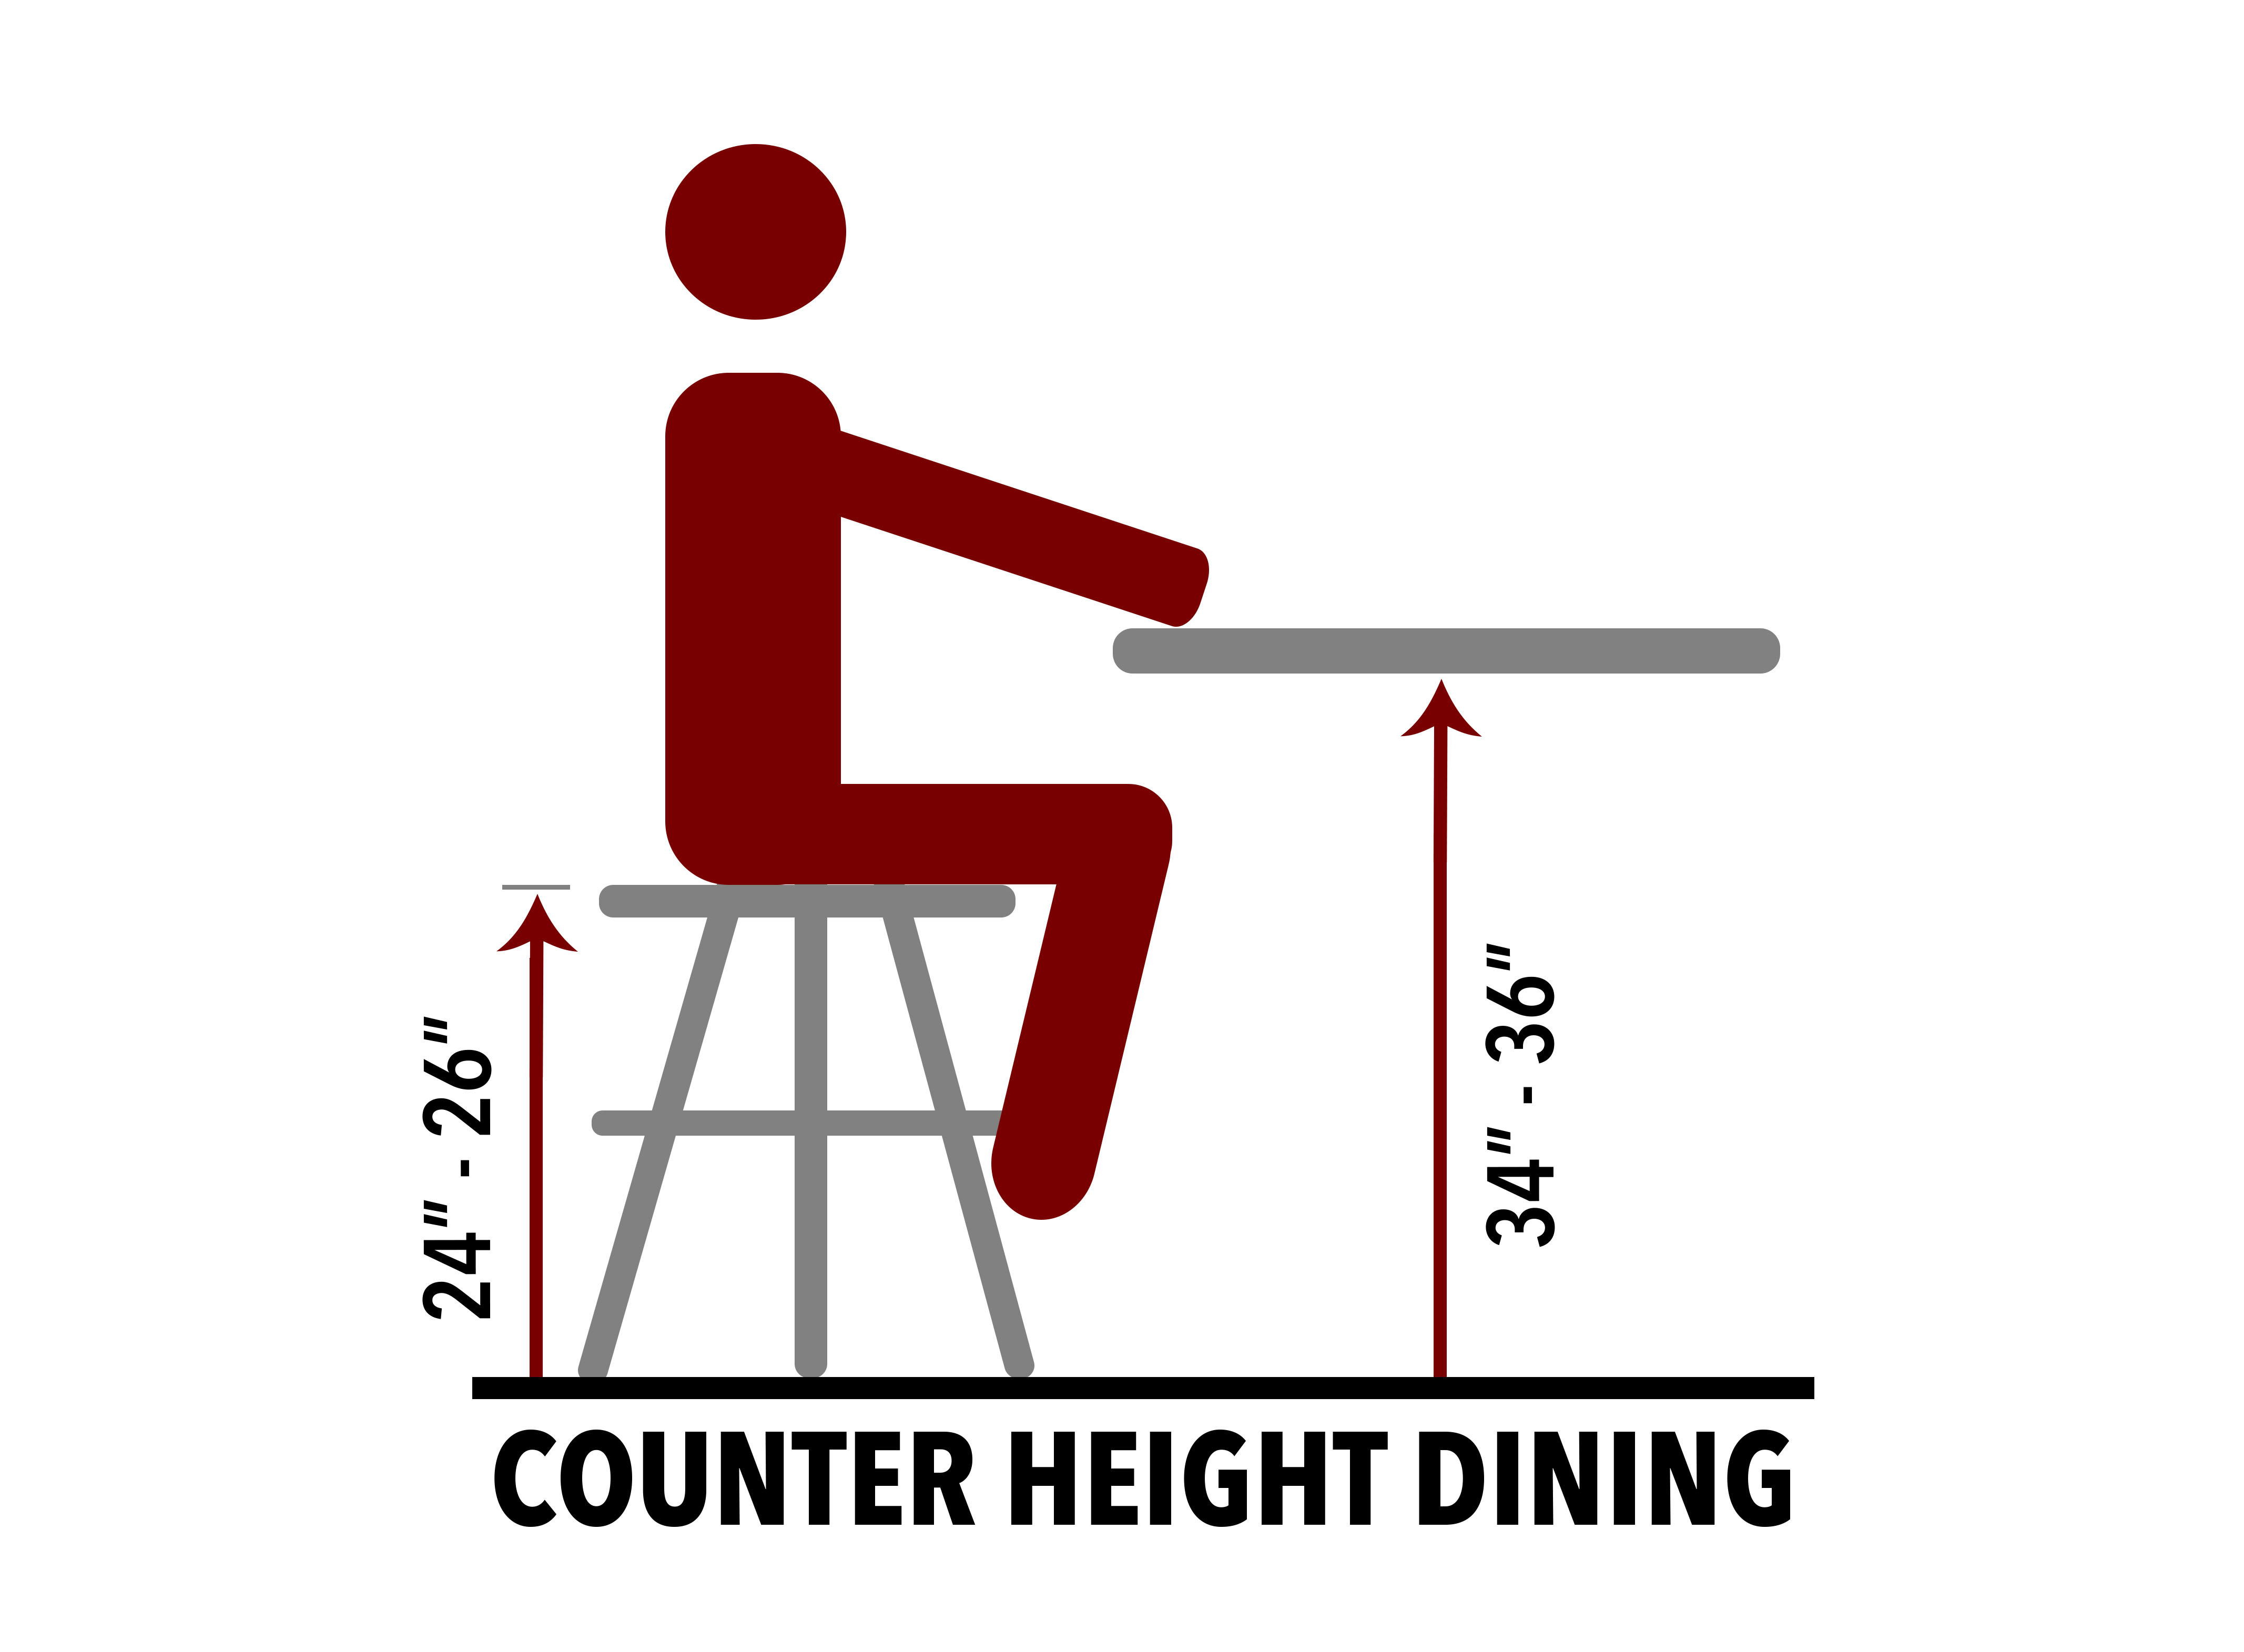 counter-height-dining.jpg